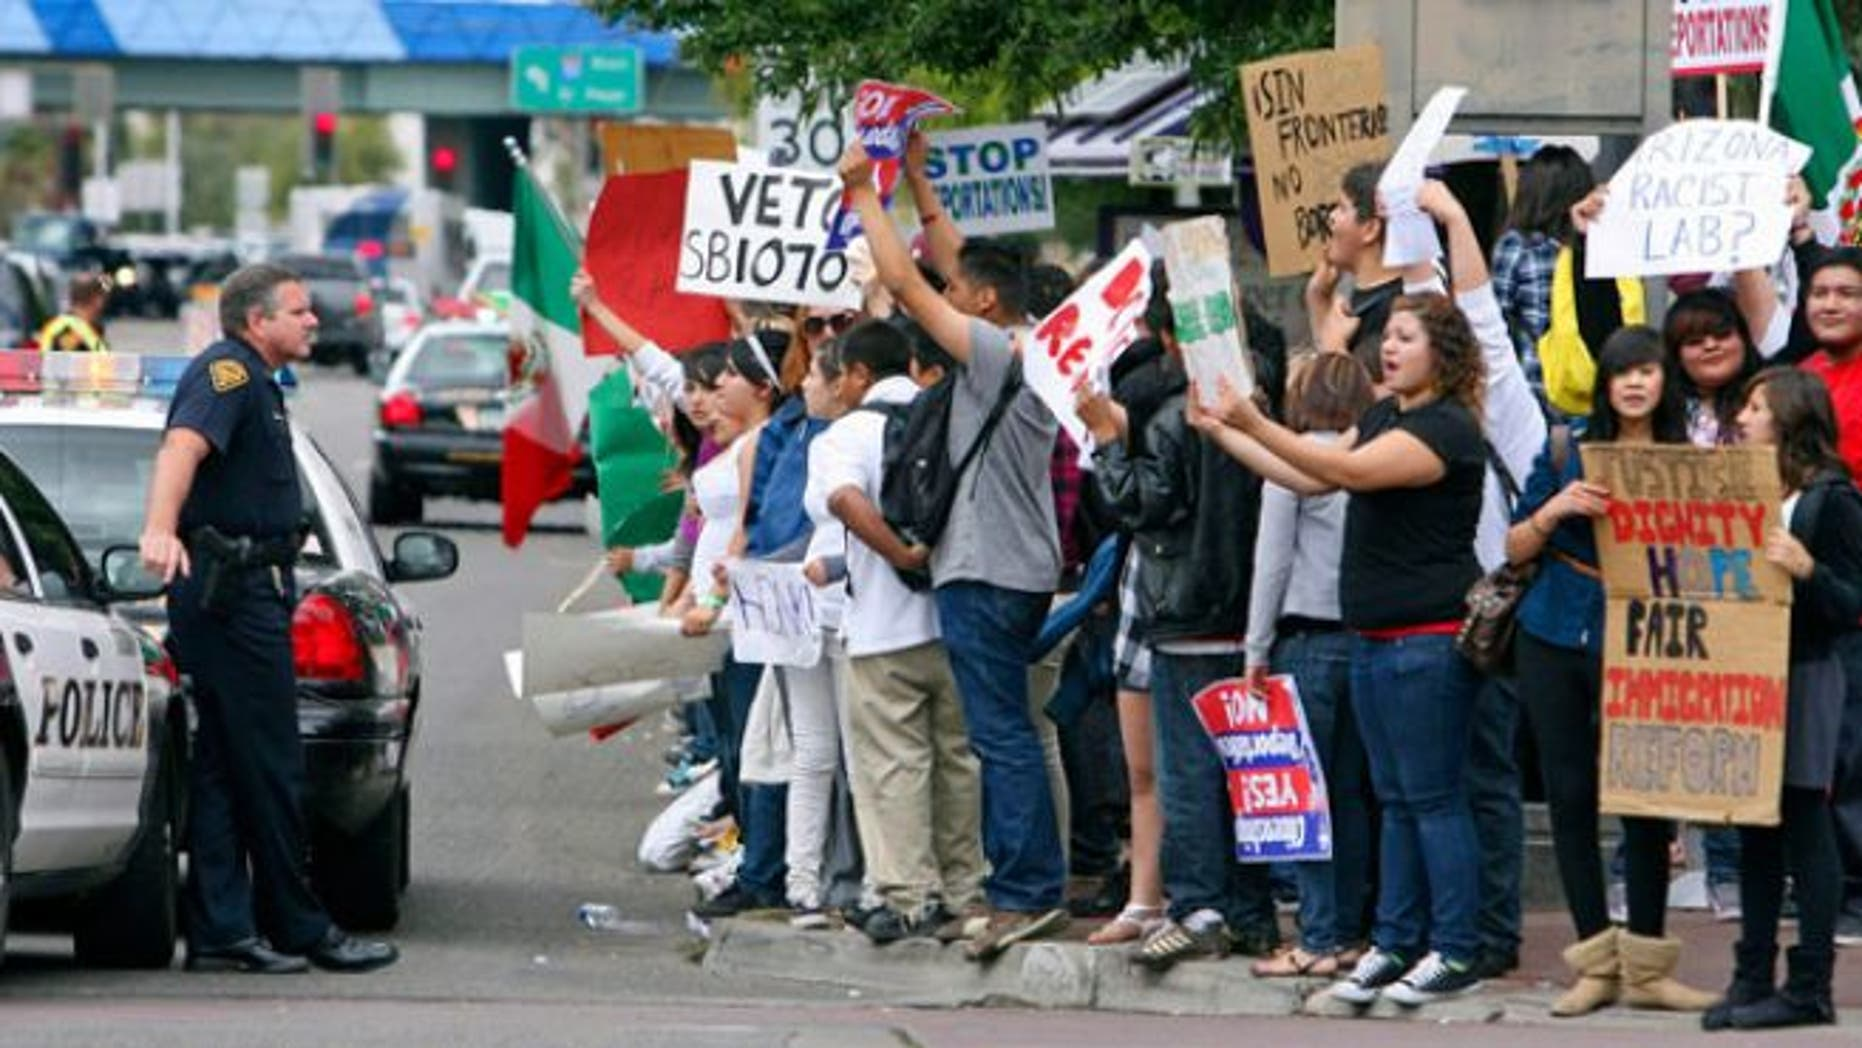 FILE: Hundreds of protesters rally against Arizona's immigration law in Tucson.